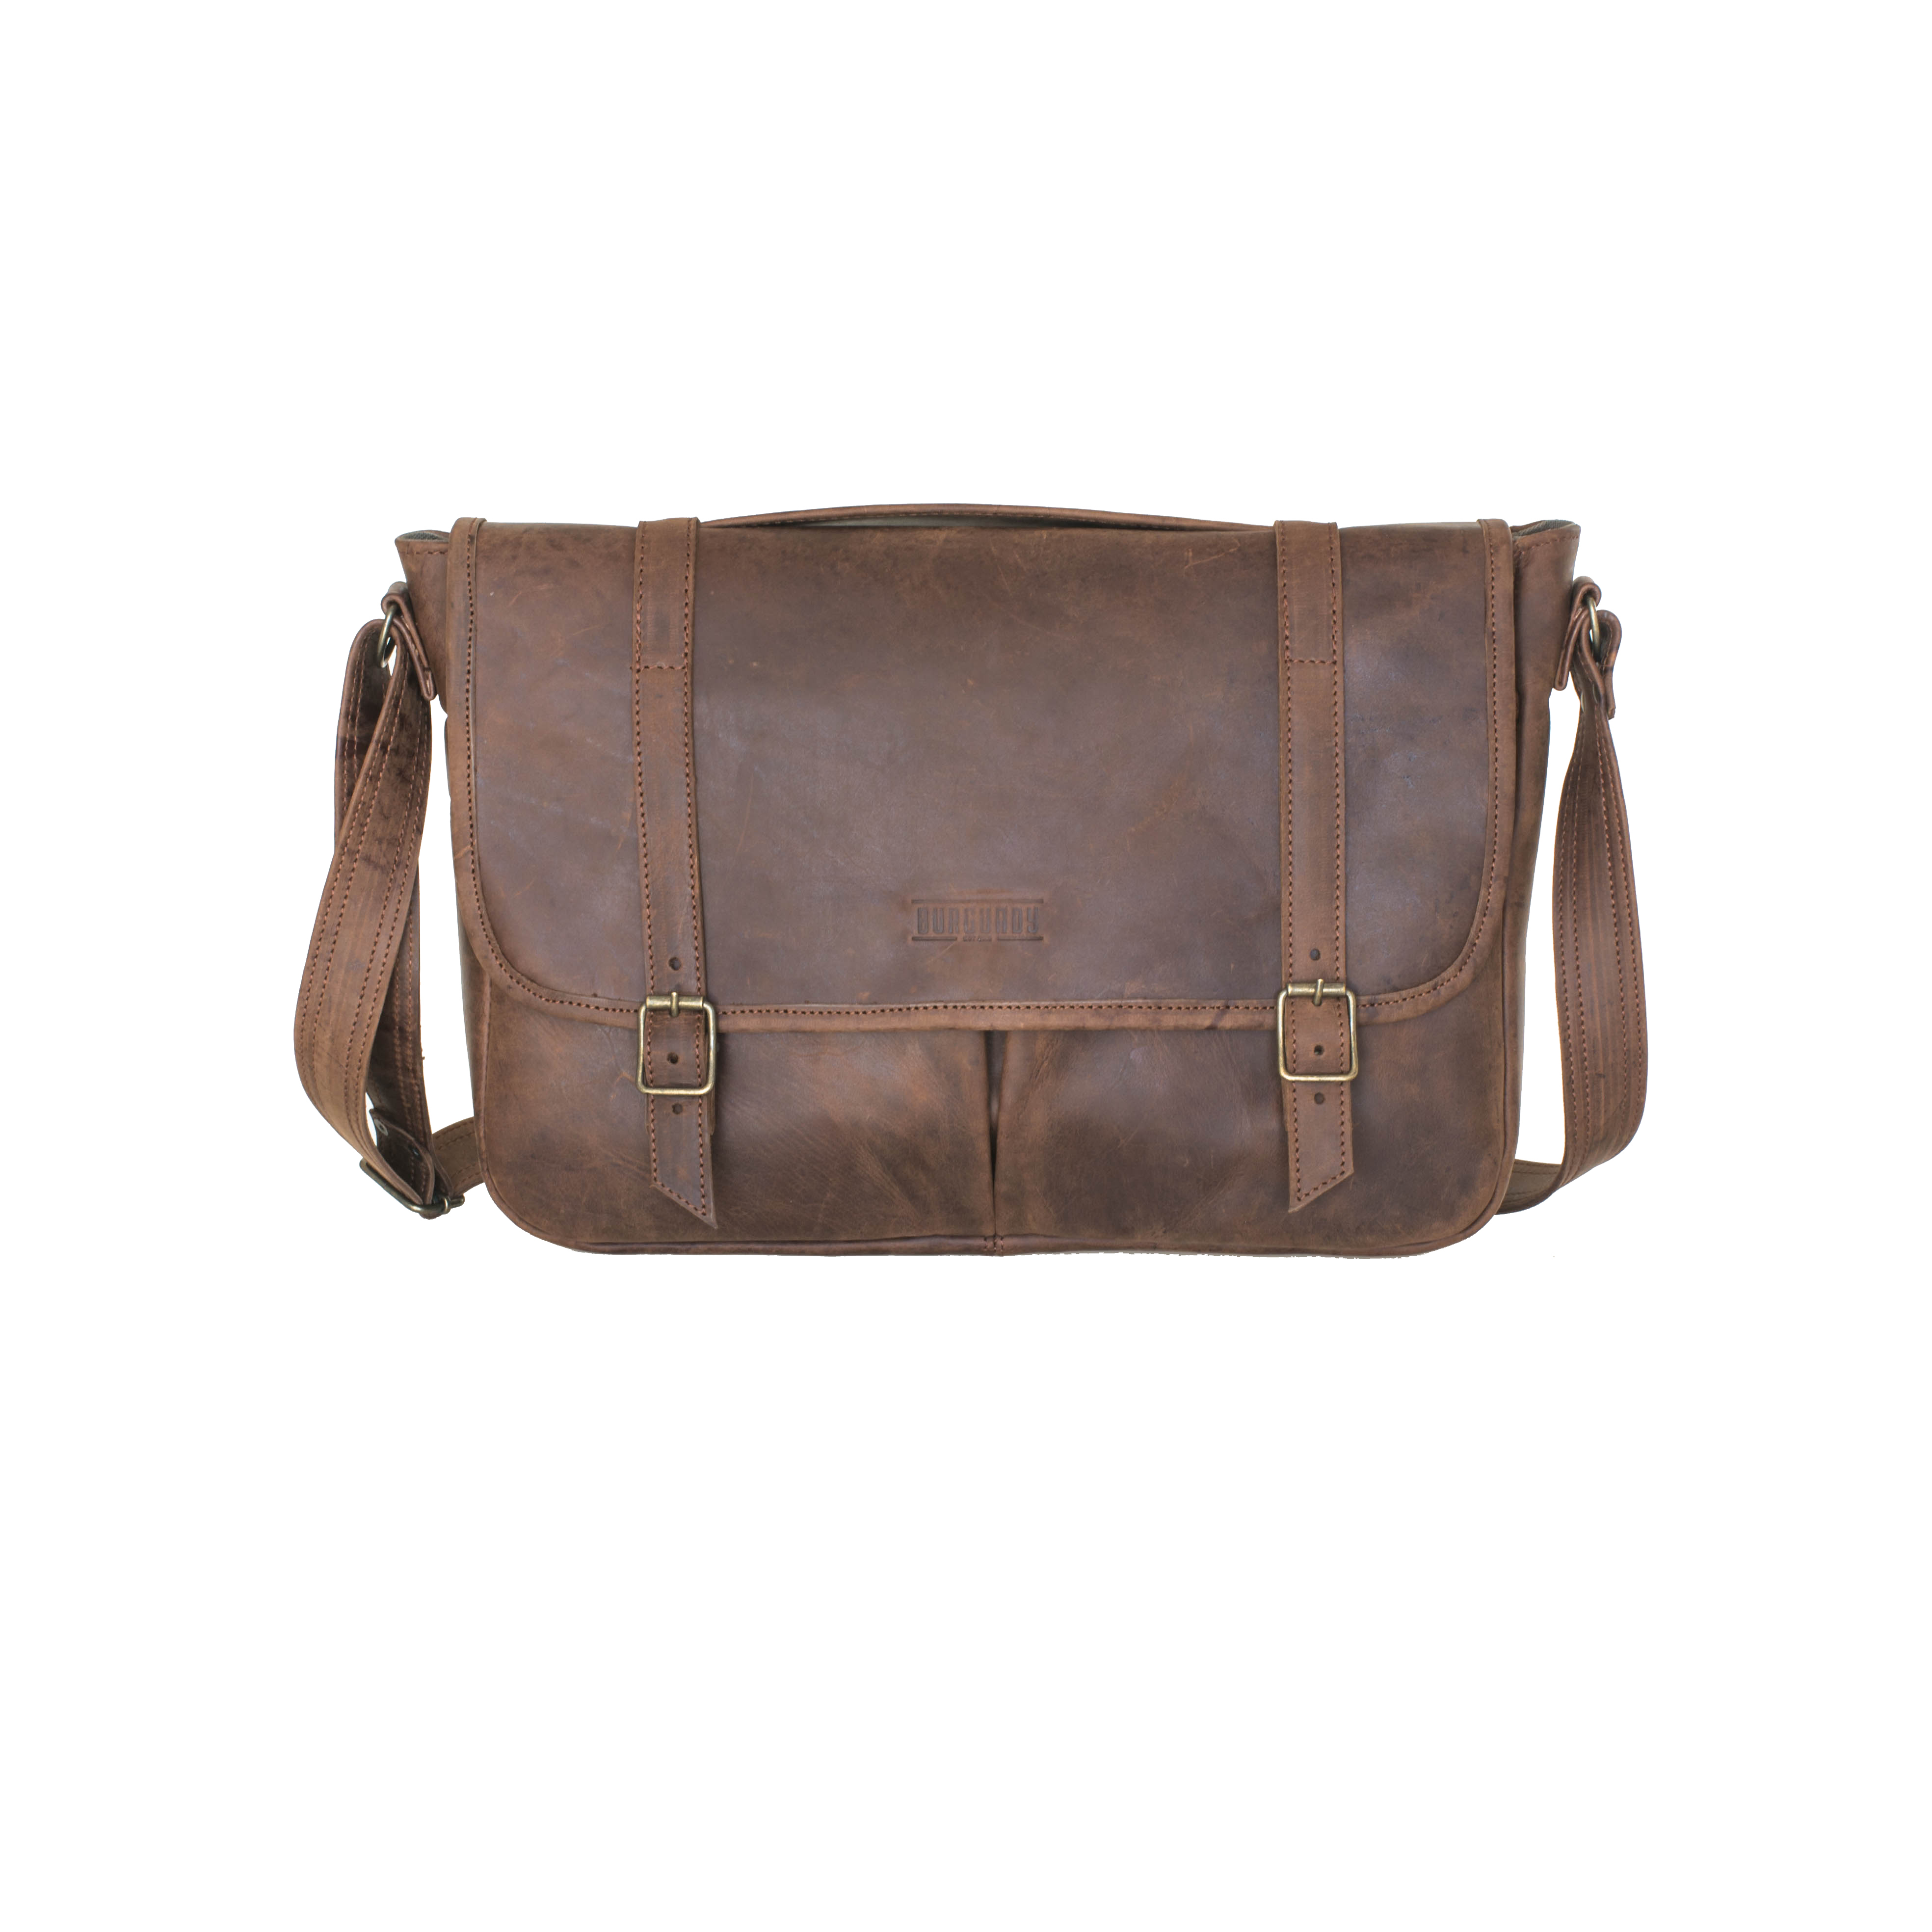 The Satchel is a structured briefcase, able to stand on its own. A low-slung bag with a casual feel, it has a long adjustable strap and can be worn on the shoulder or across the chest. Perfect for your 13 or 15 inch laptop and extras.    FEATURES   Front exterior file pocket Back exterior file pocket Back exterior zip pocket Interior padded with foam for laptop protection Cotton canvas lining Interior divider / two compartments Interior small file pocket suitable for mobile phone, keys and a wallet     DIMENSIONS  H 30cm x W 40cm x D 12cm